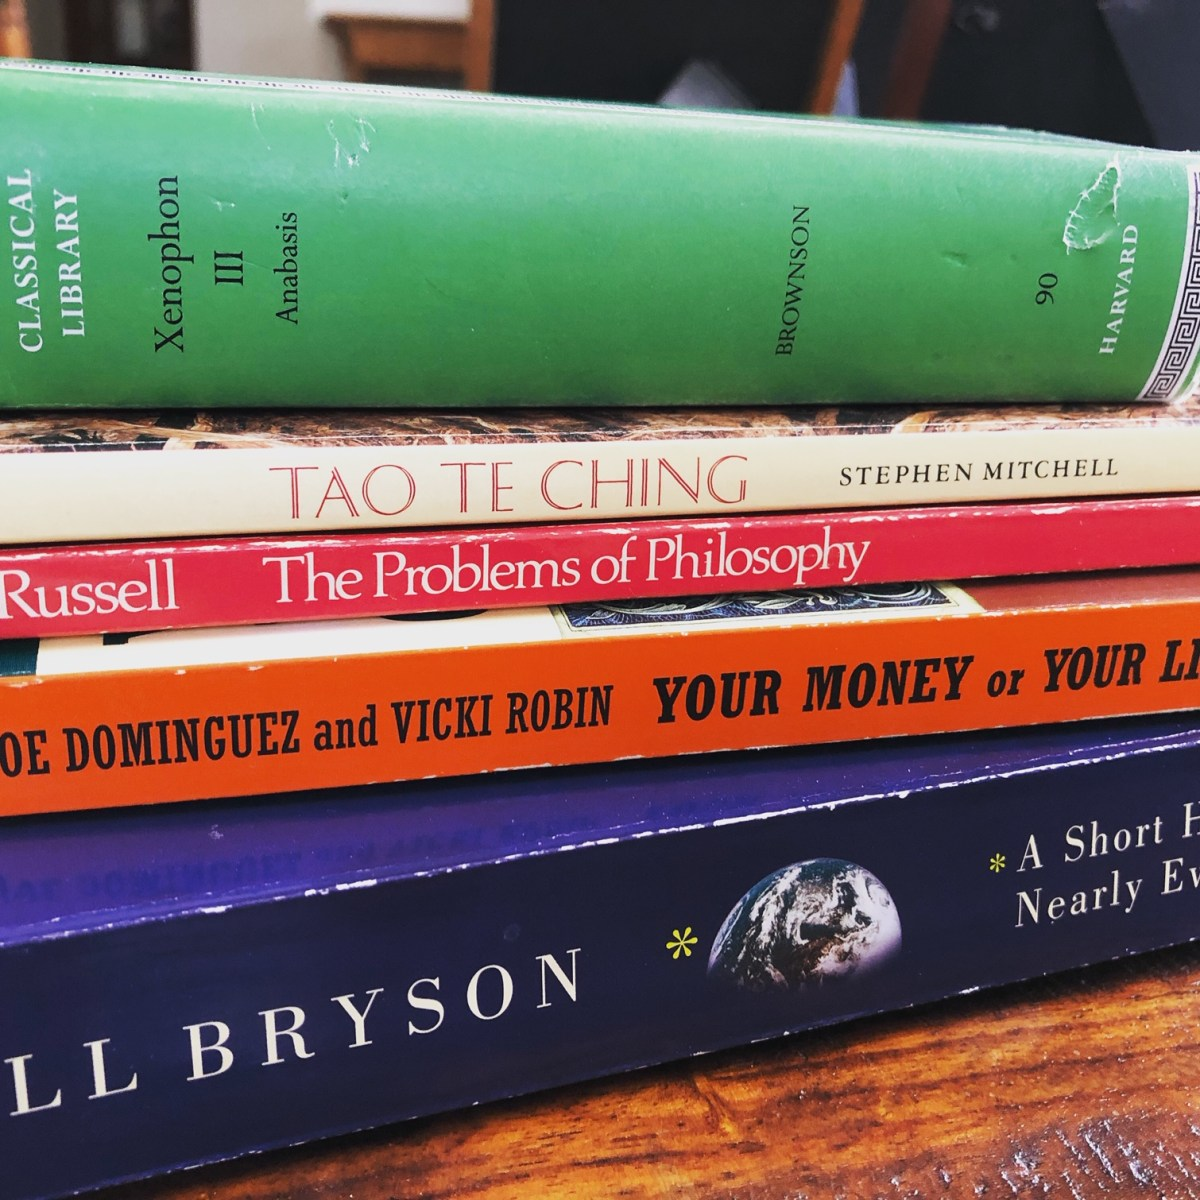 Five Books to Re-read This Year